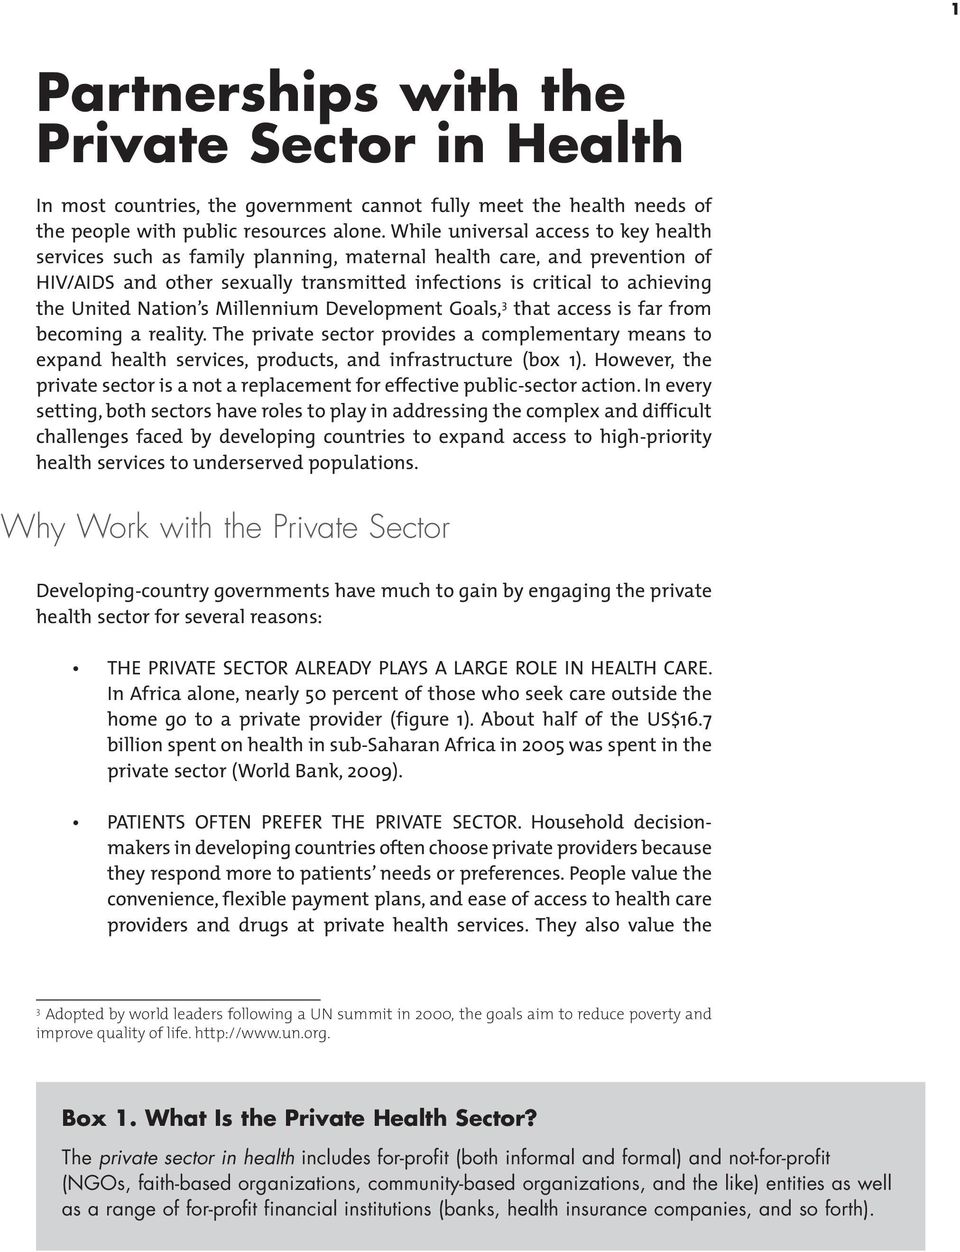 Nation s Millennium Development Goals, 3 that access is far from becoming a reality. The private sector provides a complementary means to expand health services, products, and infrastructure (box 1).